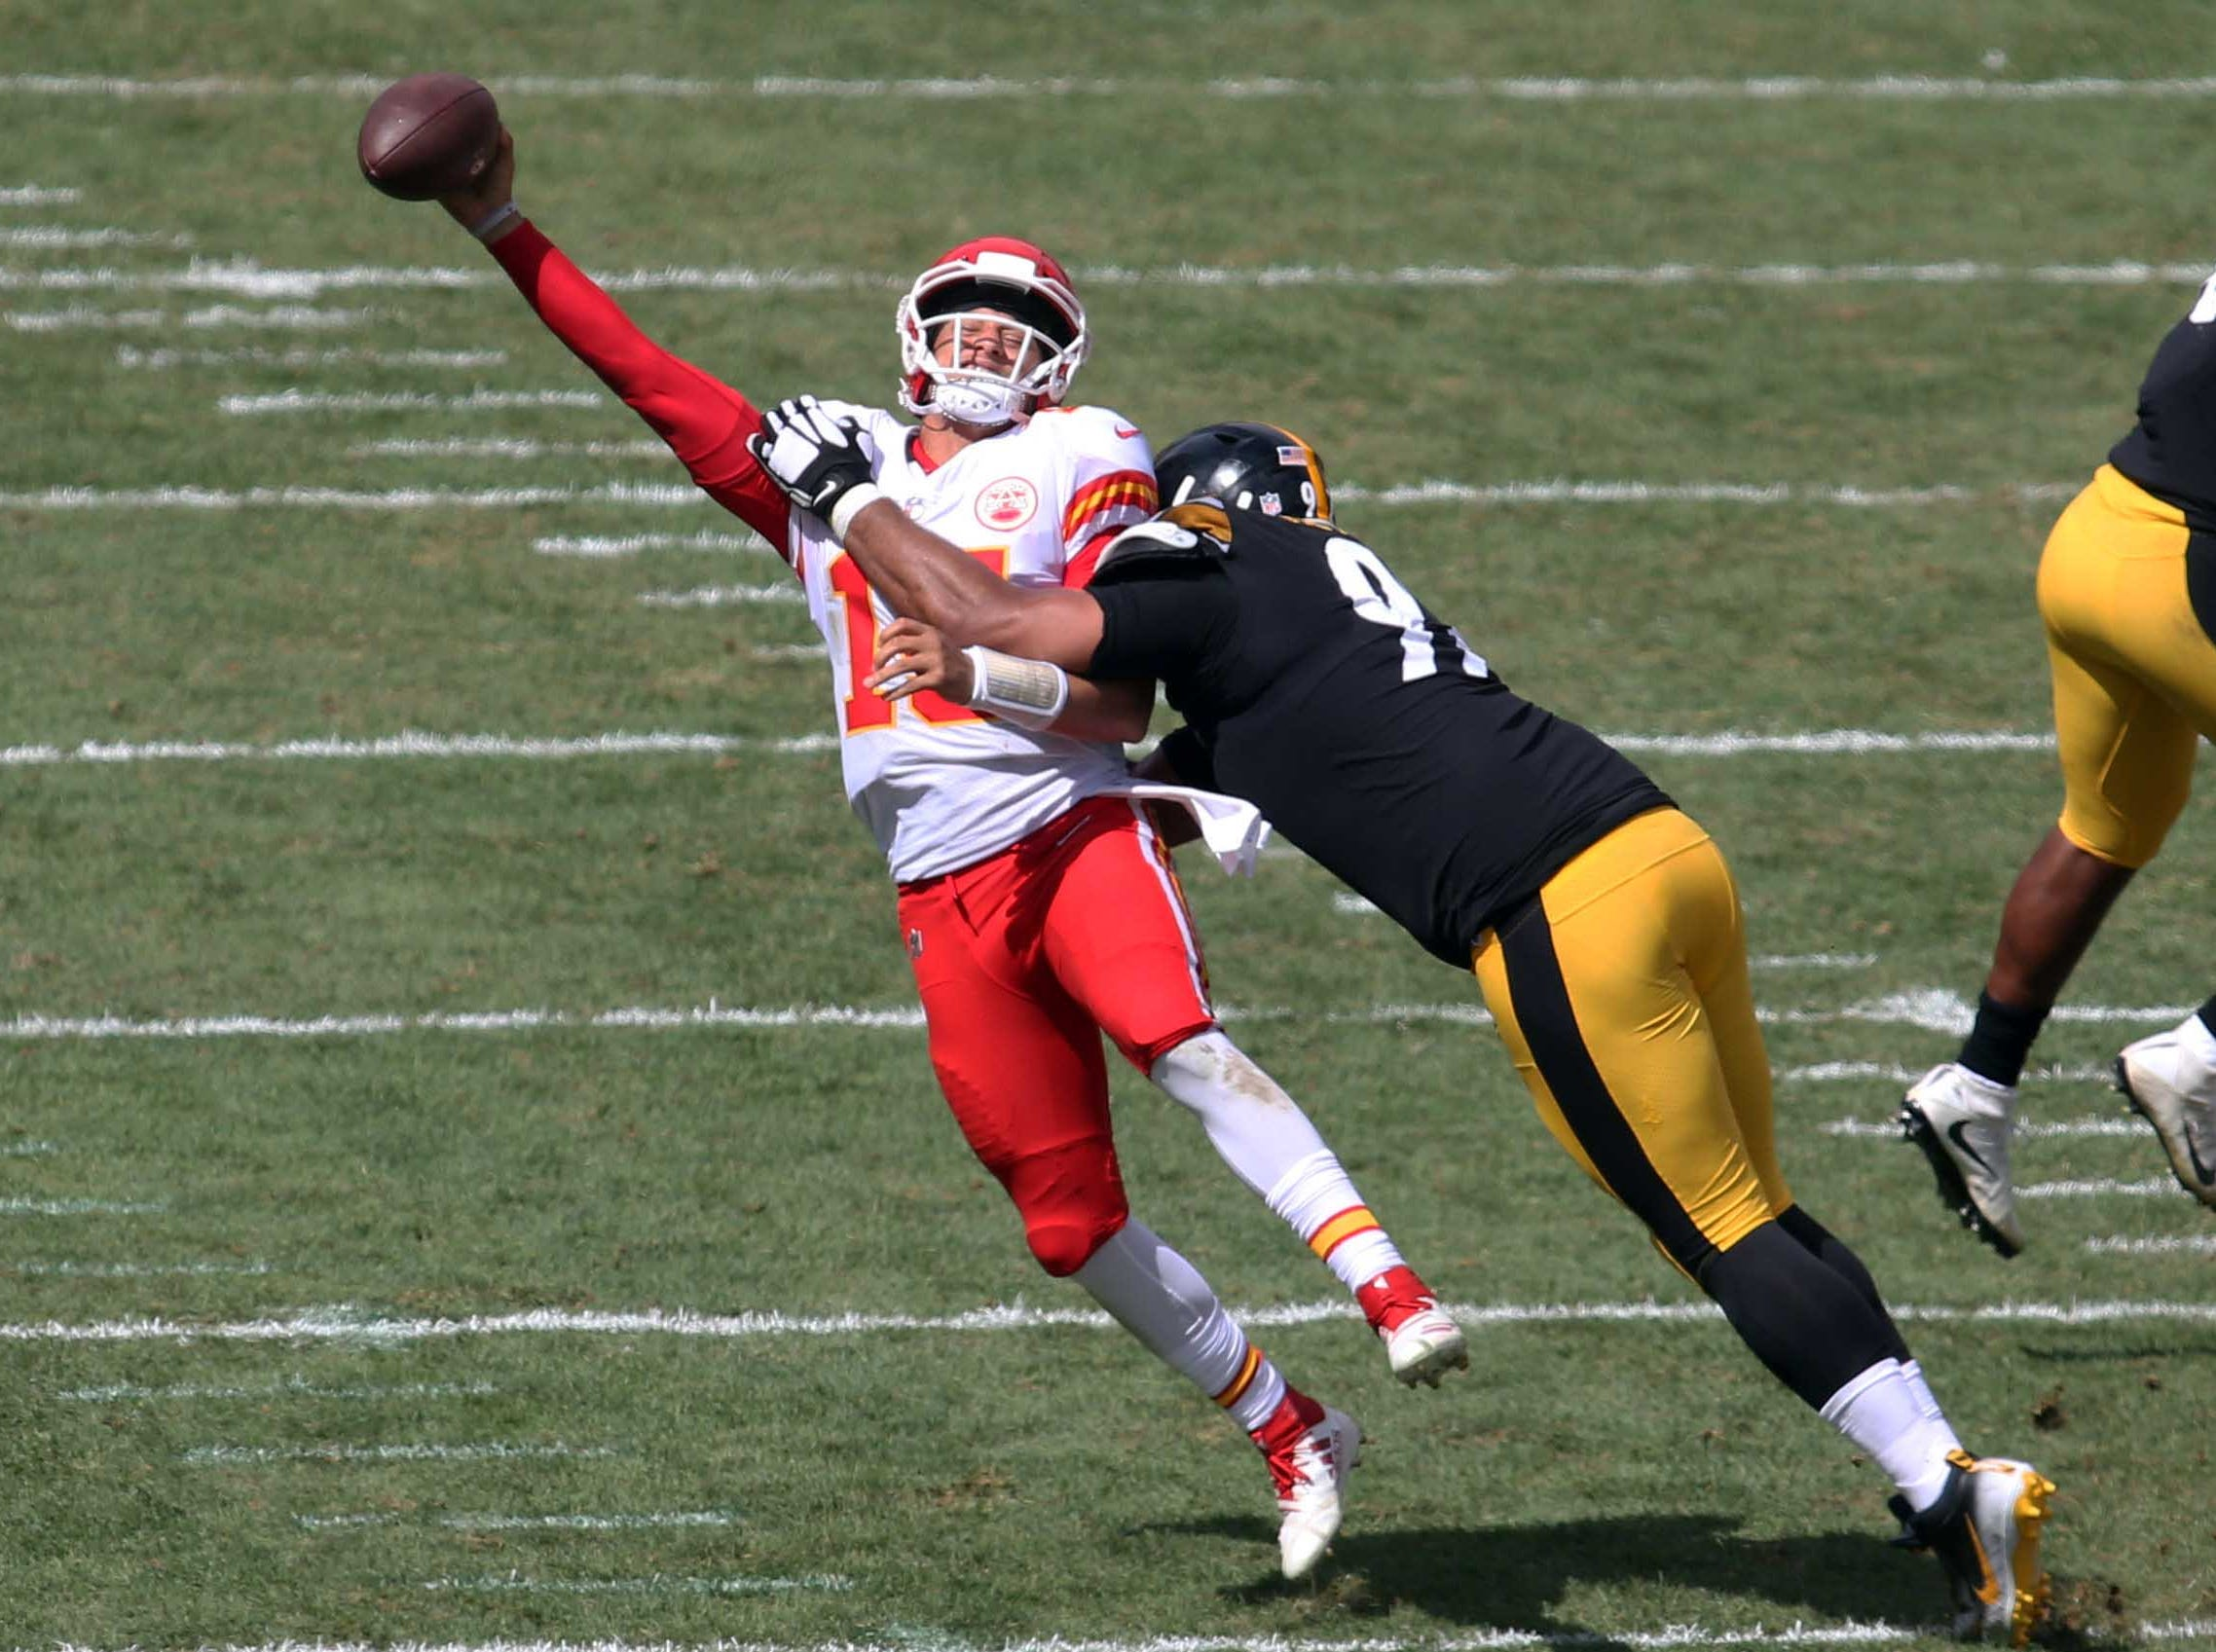 Pittsburgh Steelers defensive tackle Cameron Heyward pressures Kansas City Chiefs quarterback Patrick Mahomes as he throws during the second quarter at Heinz Field.